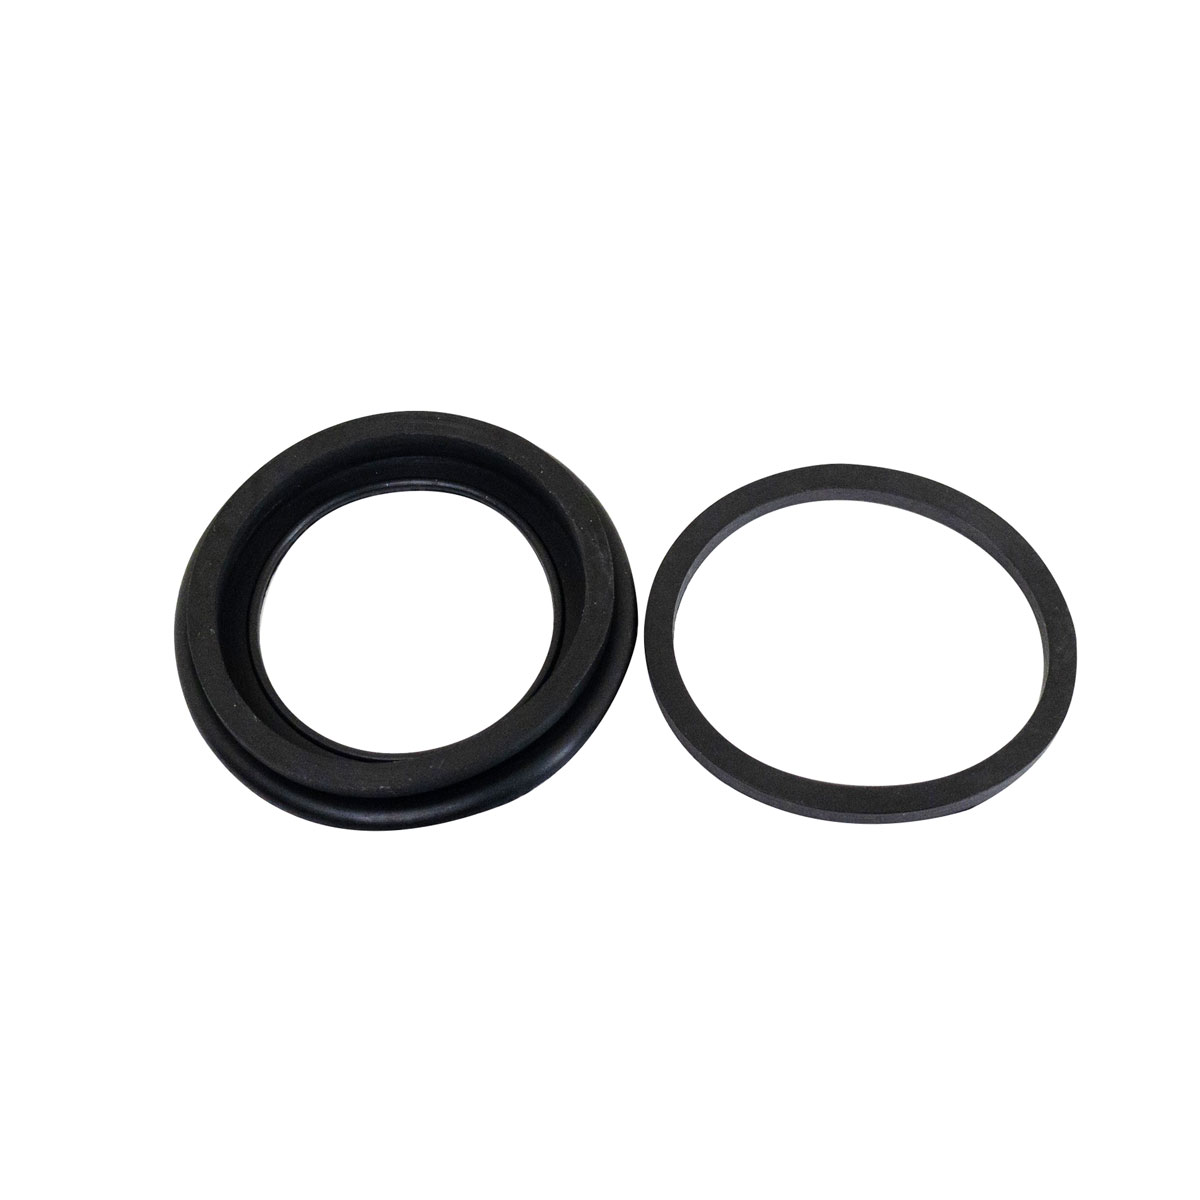 J&P Cycles® Front Caliper Seal Kit